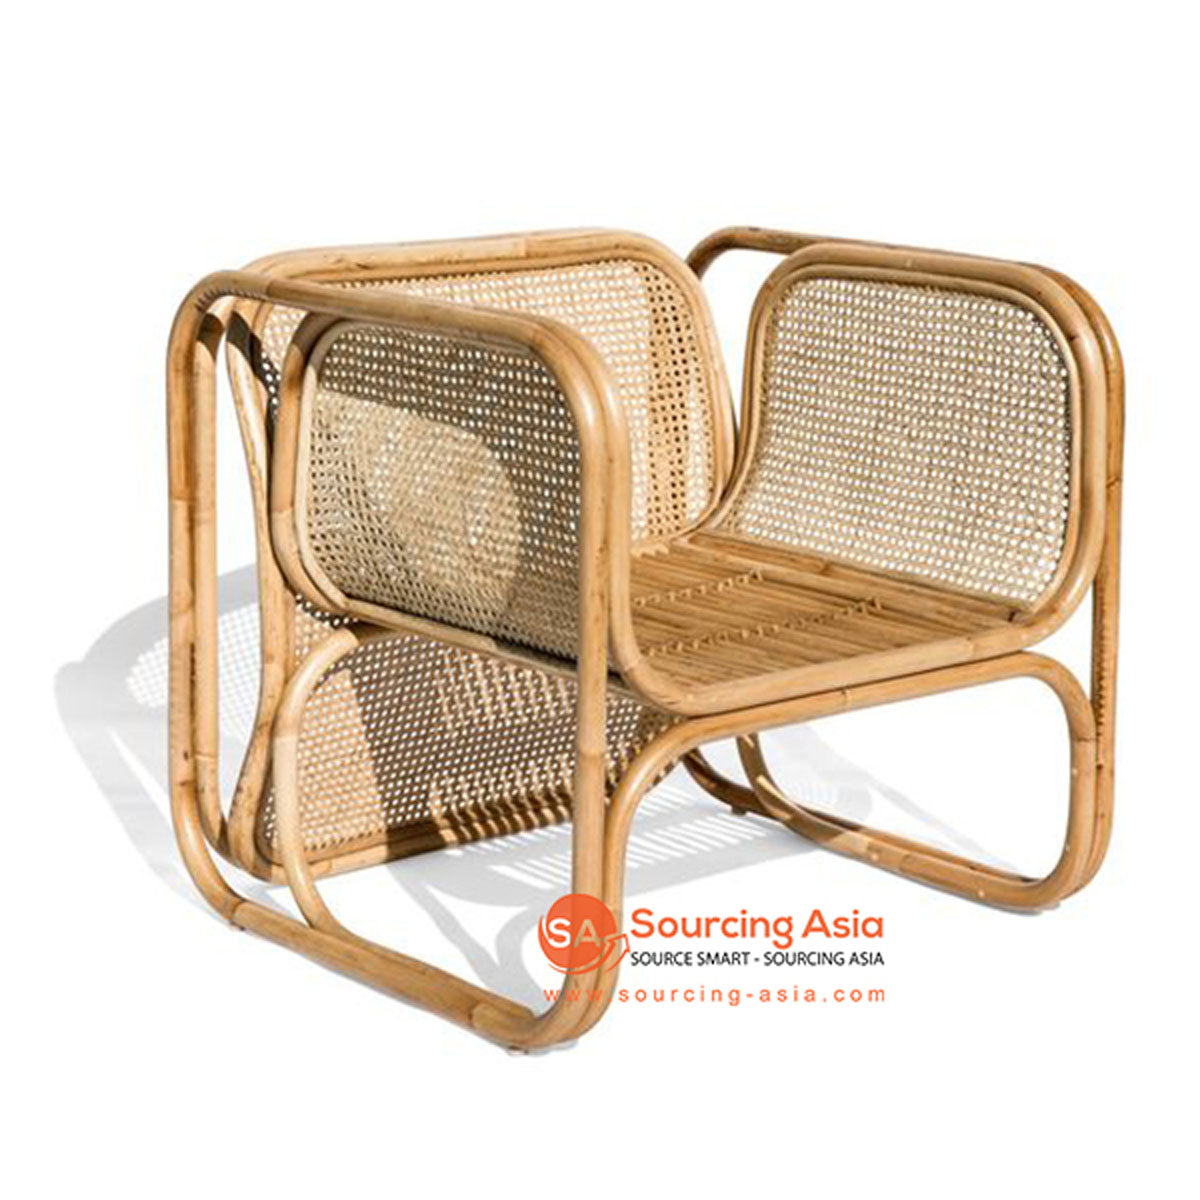 SHL105 - NATURAL UPHOLSTERED DESIGN ARMCHAIR